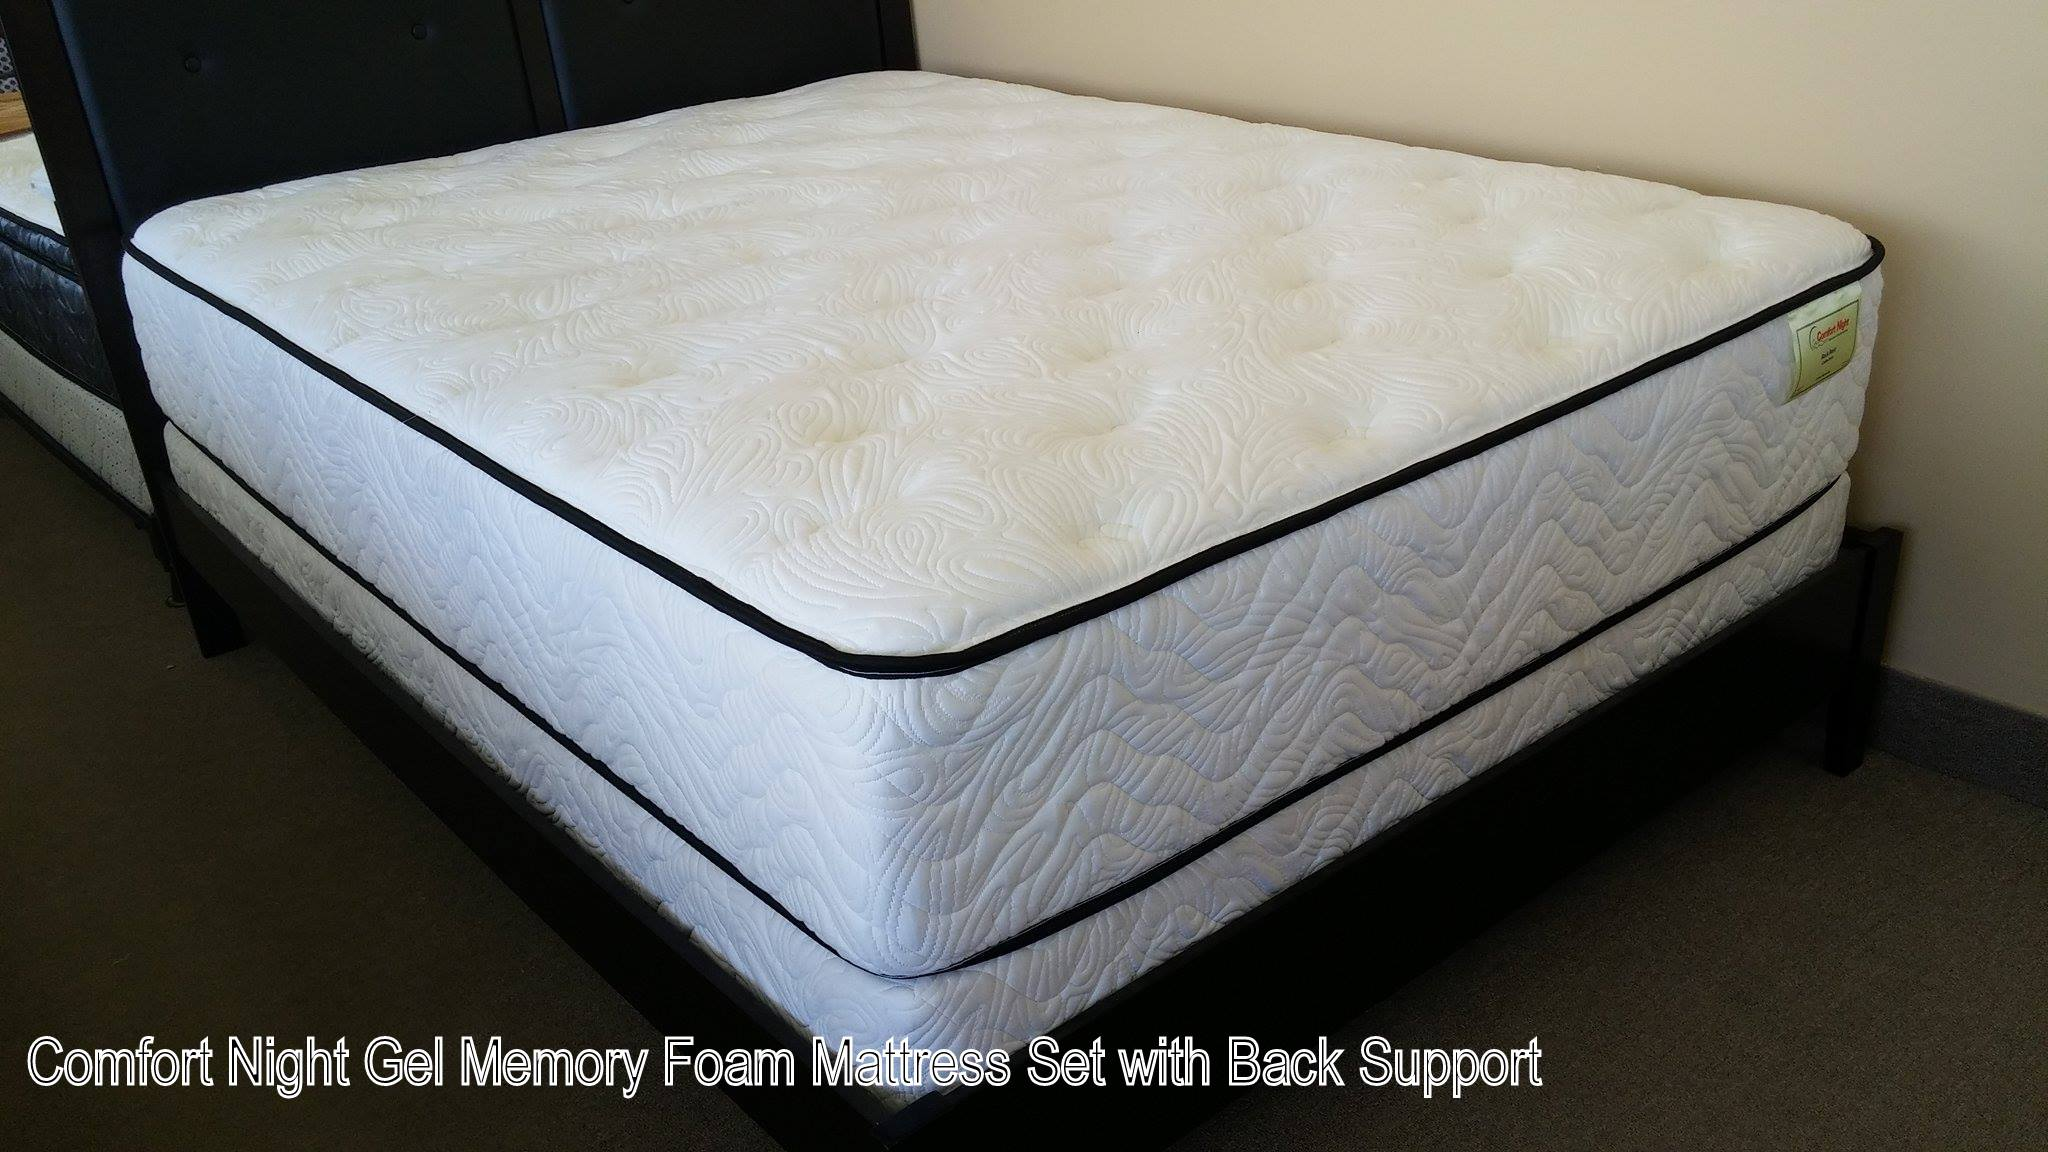 MatreMattresses In Scarborough, Mattresses In Mississauga, Mattress Store,  Kids Furniture In Scarborough, Furniture In Mississauga, Home Décor, ...